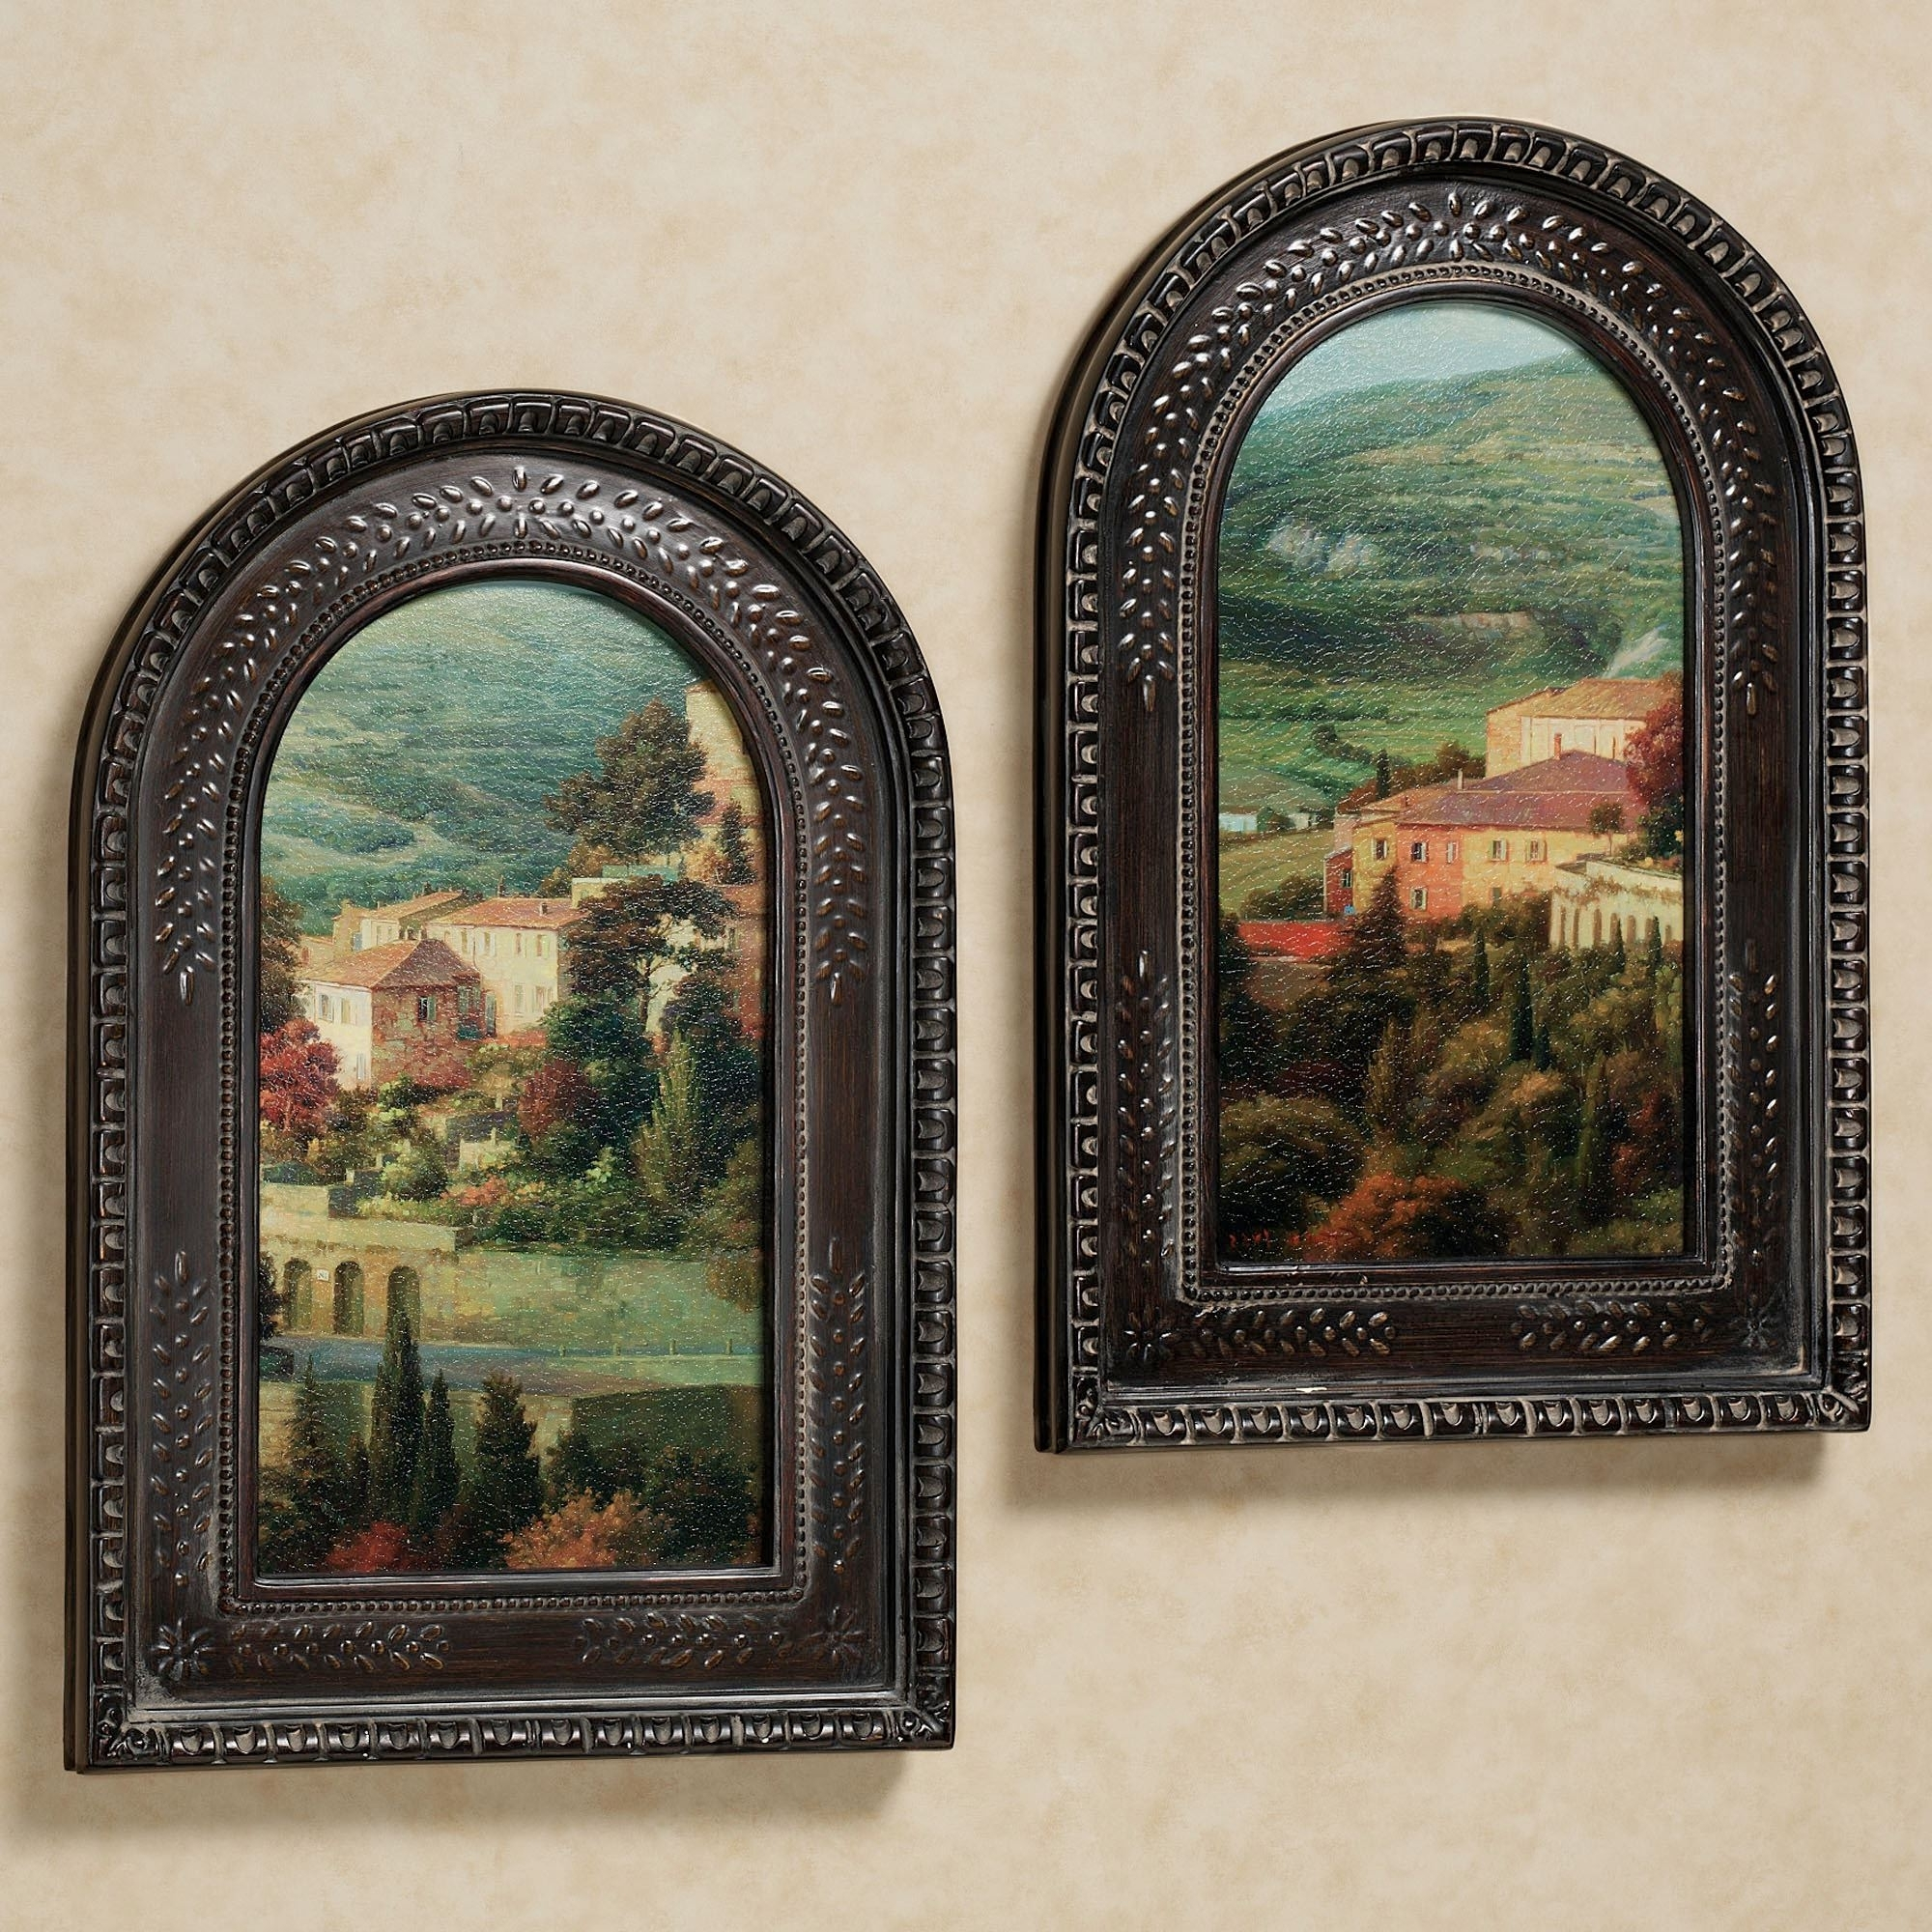 Trendy Framed Wall Art Within Italian Overlook Framed Wall Art Set (View 14 of 15)